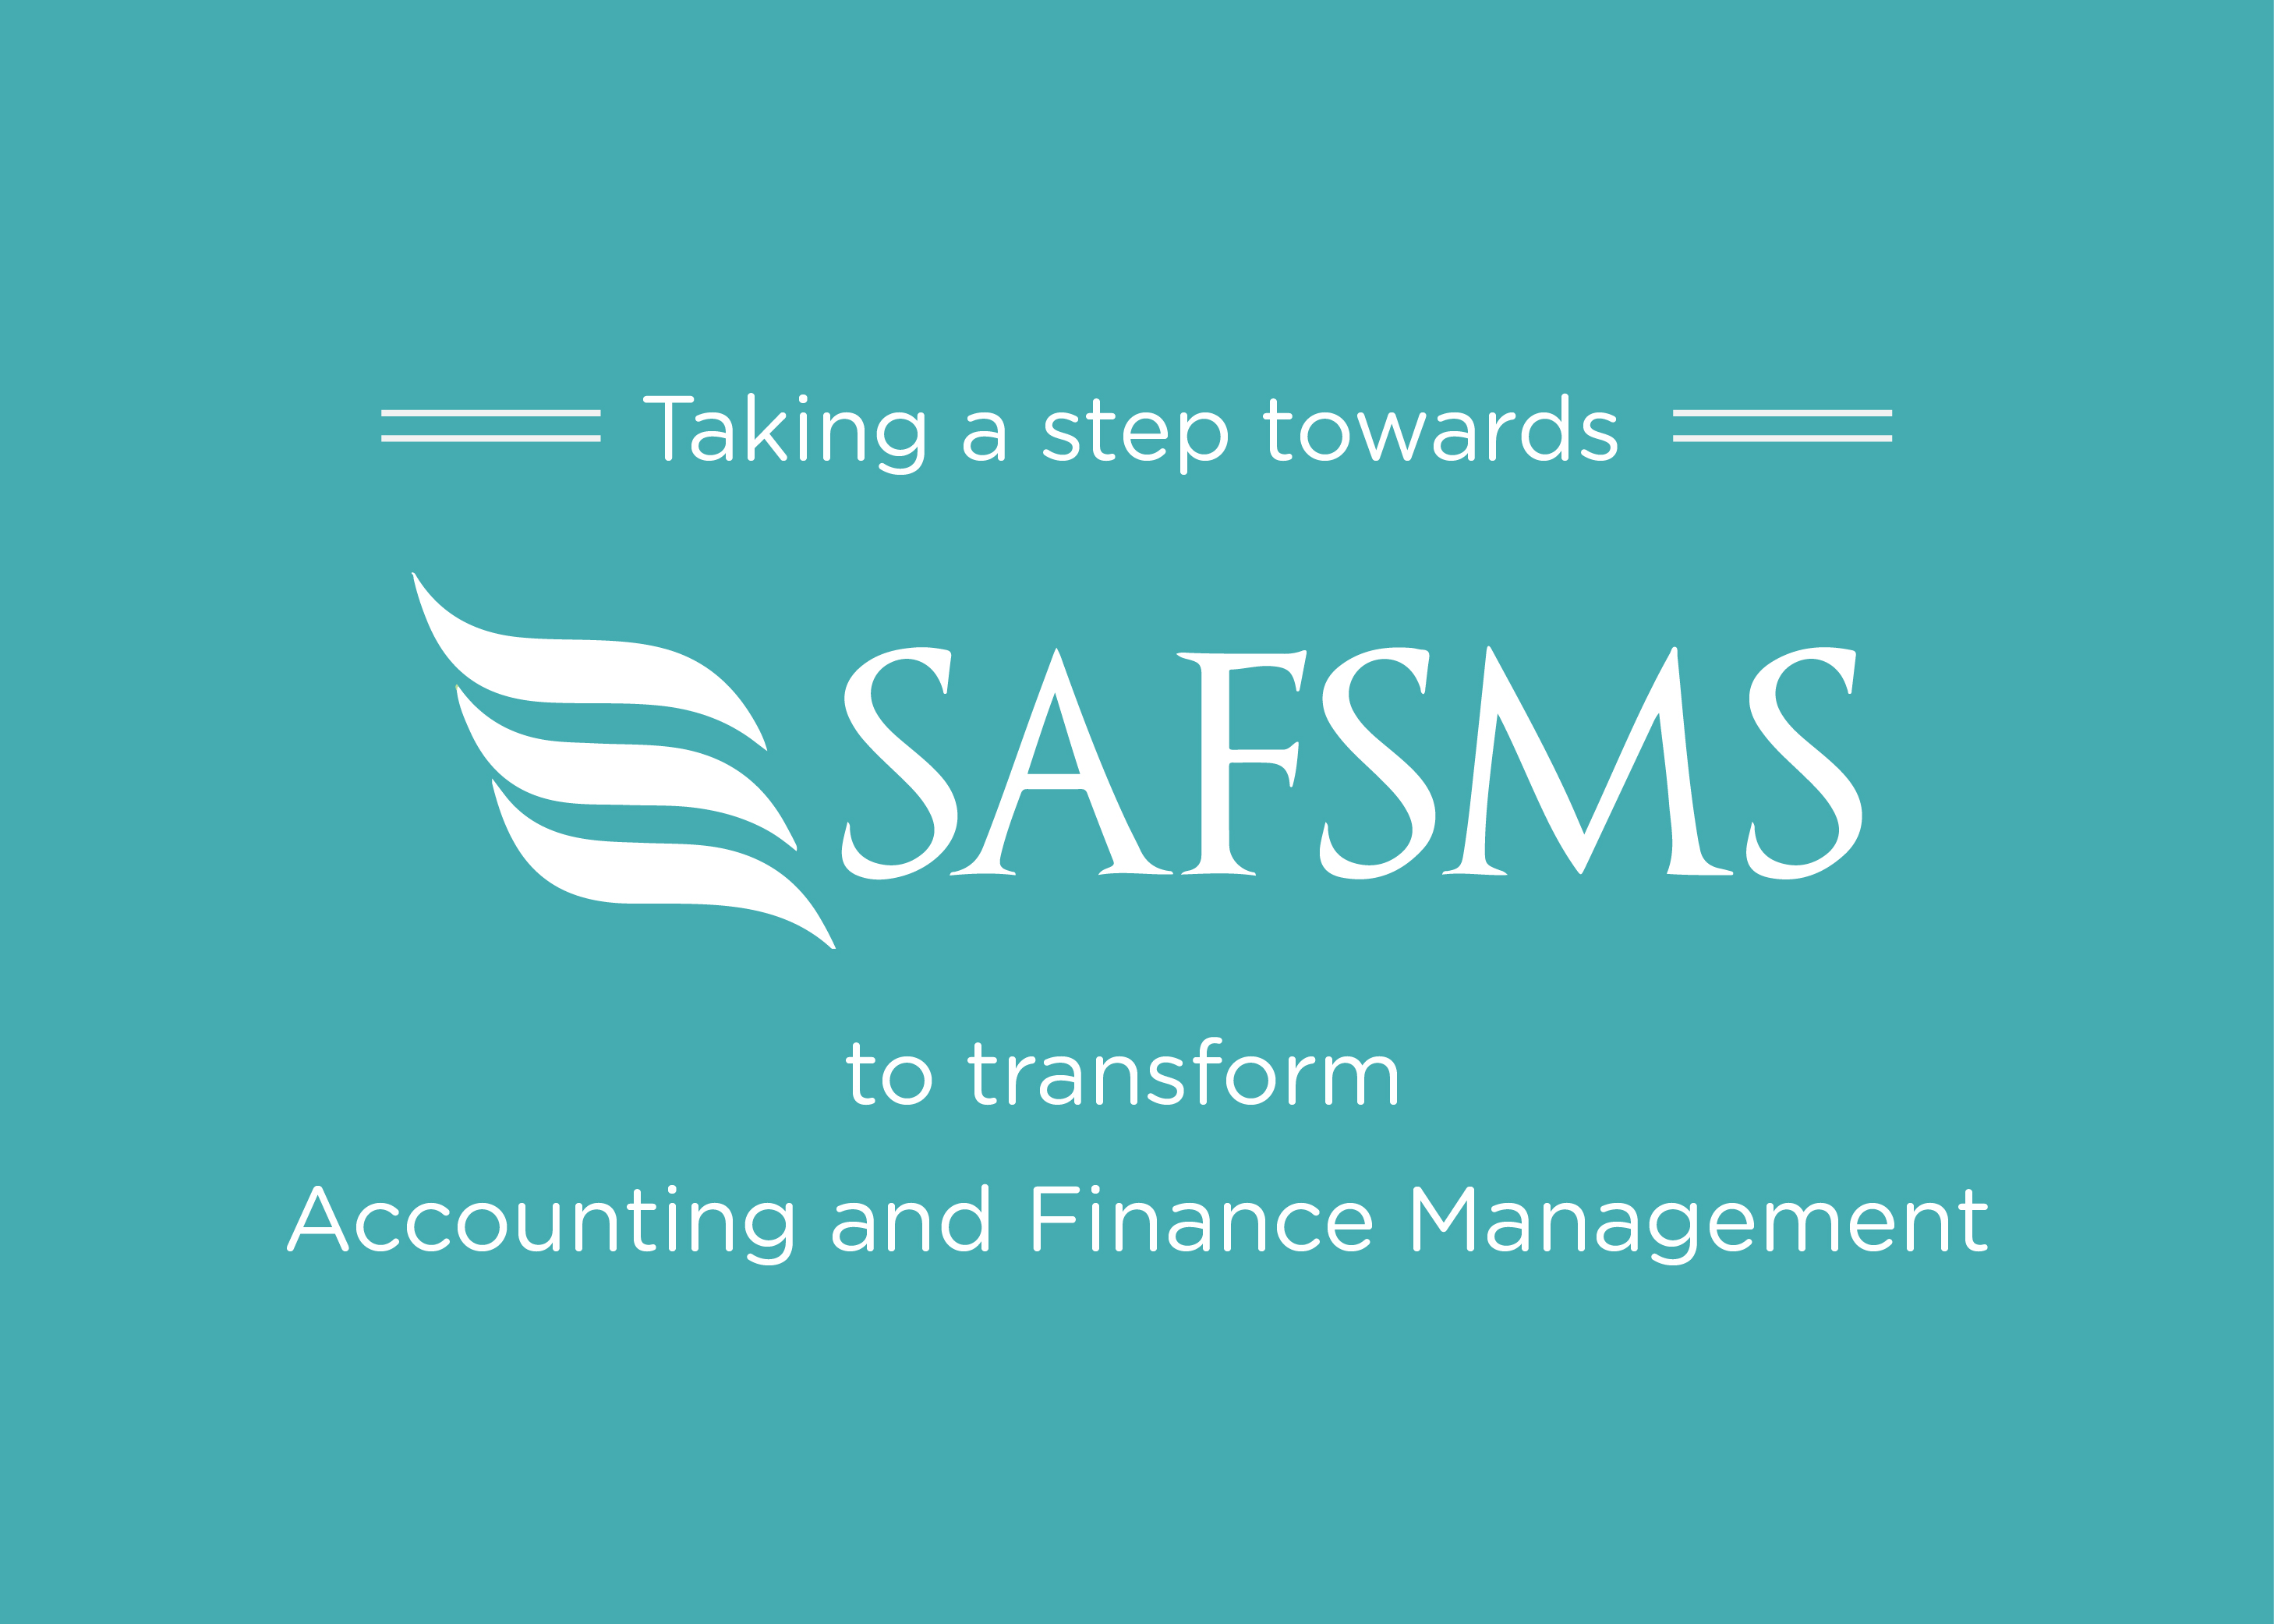 Taking a step towards SAFSMS to transform Accounting and Finance Management